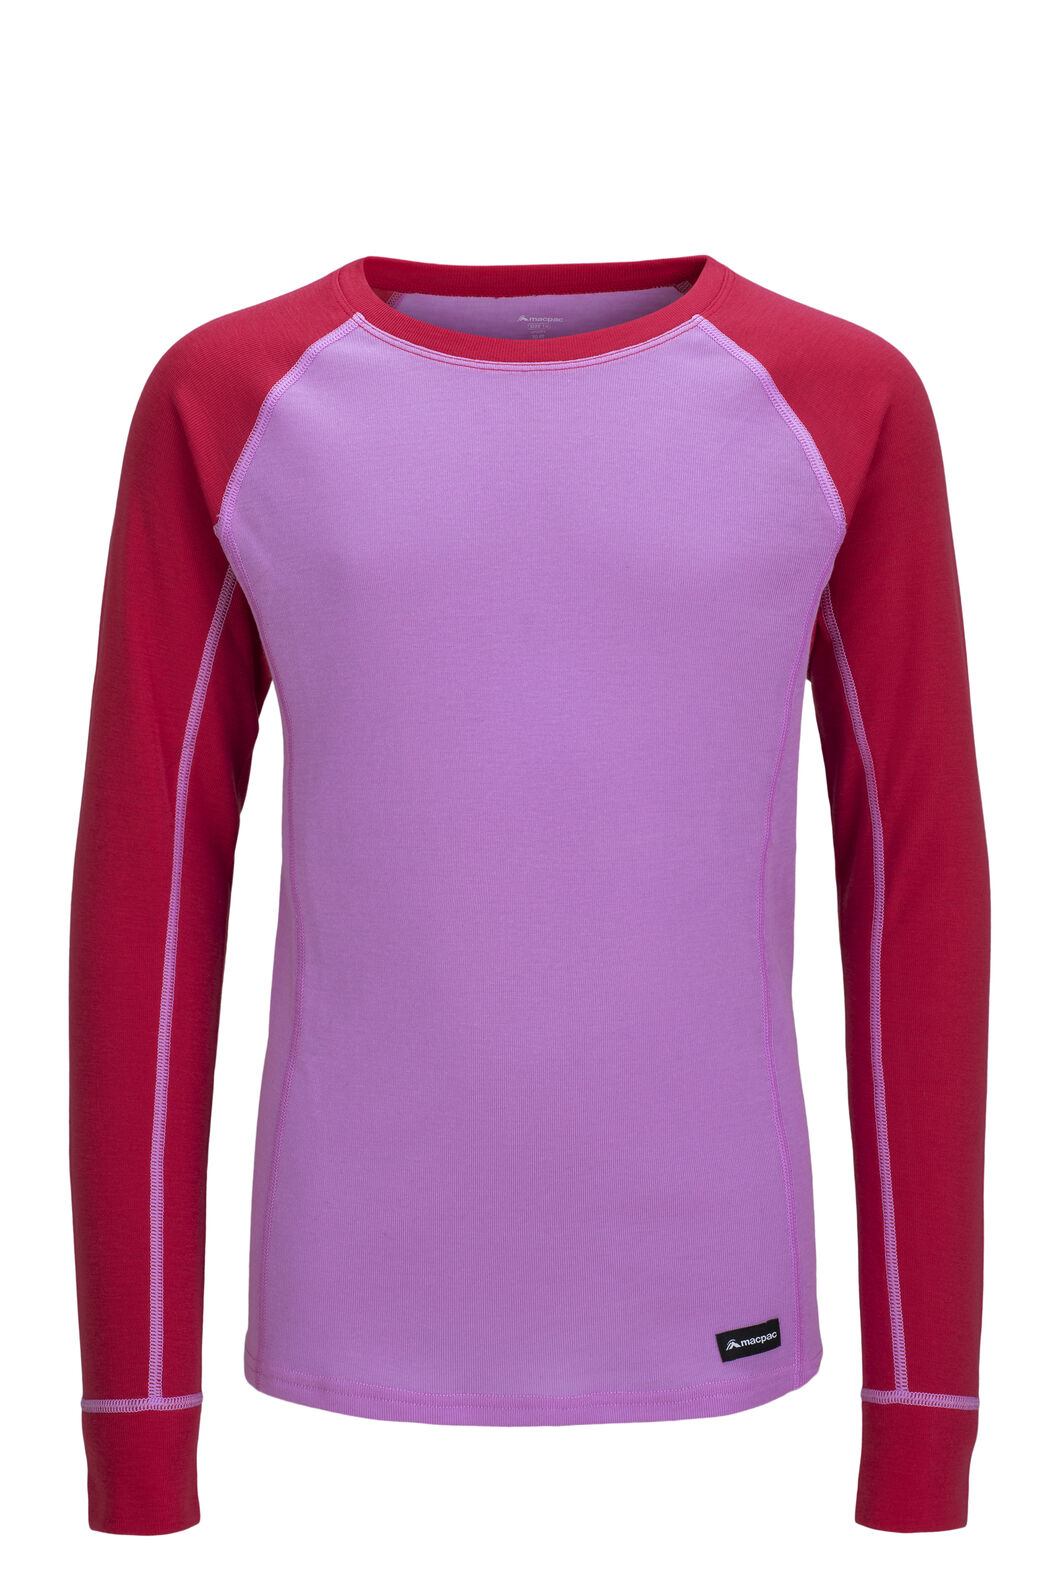 Macpac Geothermal Long Sleeve Top — Kids', Orchid/Raspberry Wine, hi-res